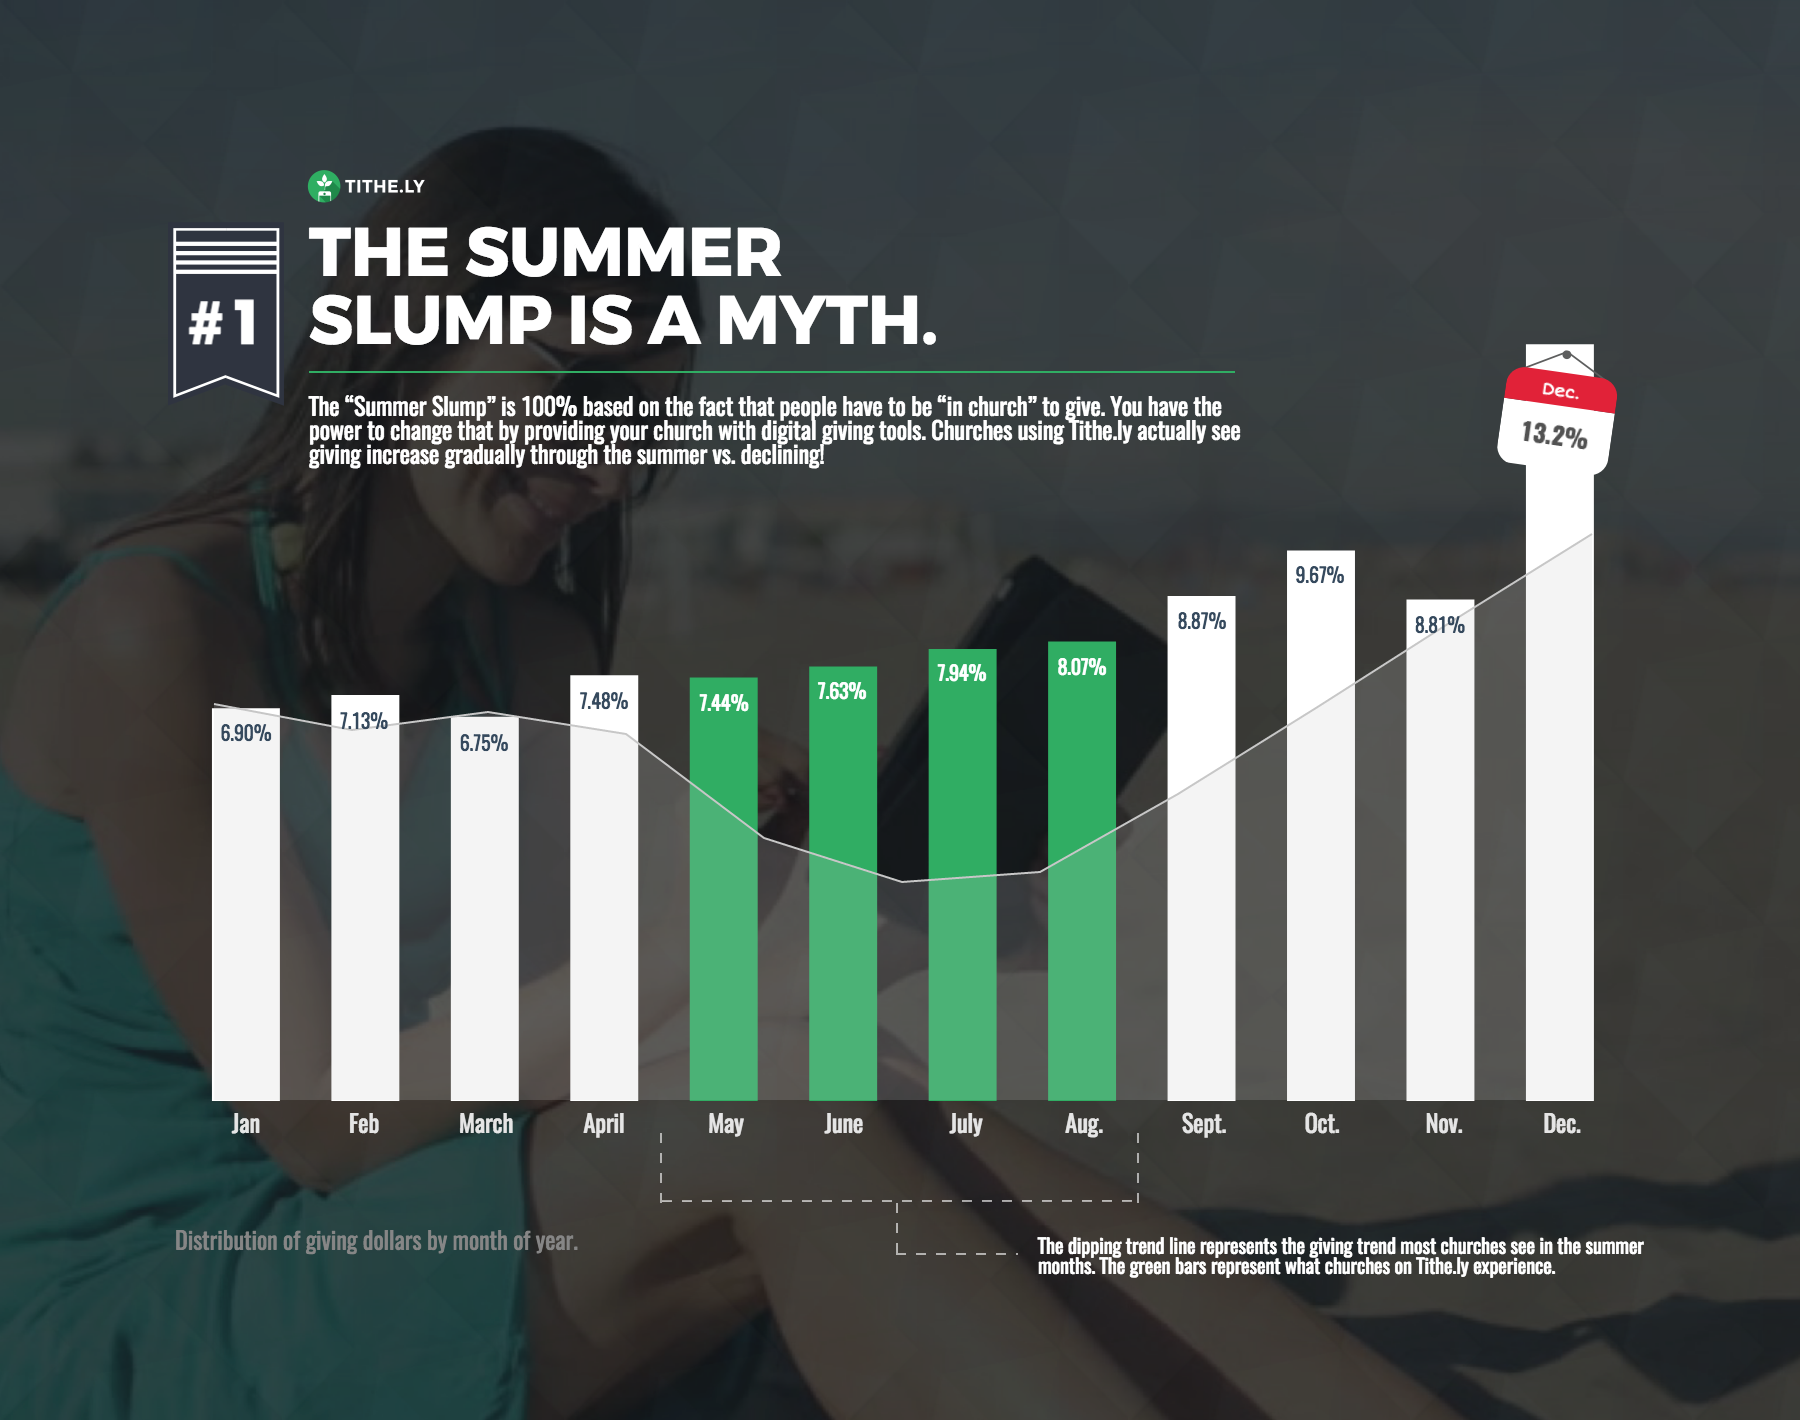 The Summer Slump is a Myth